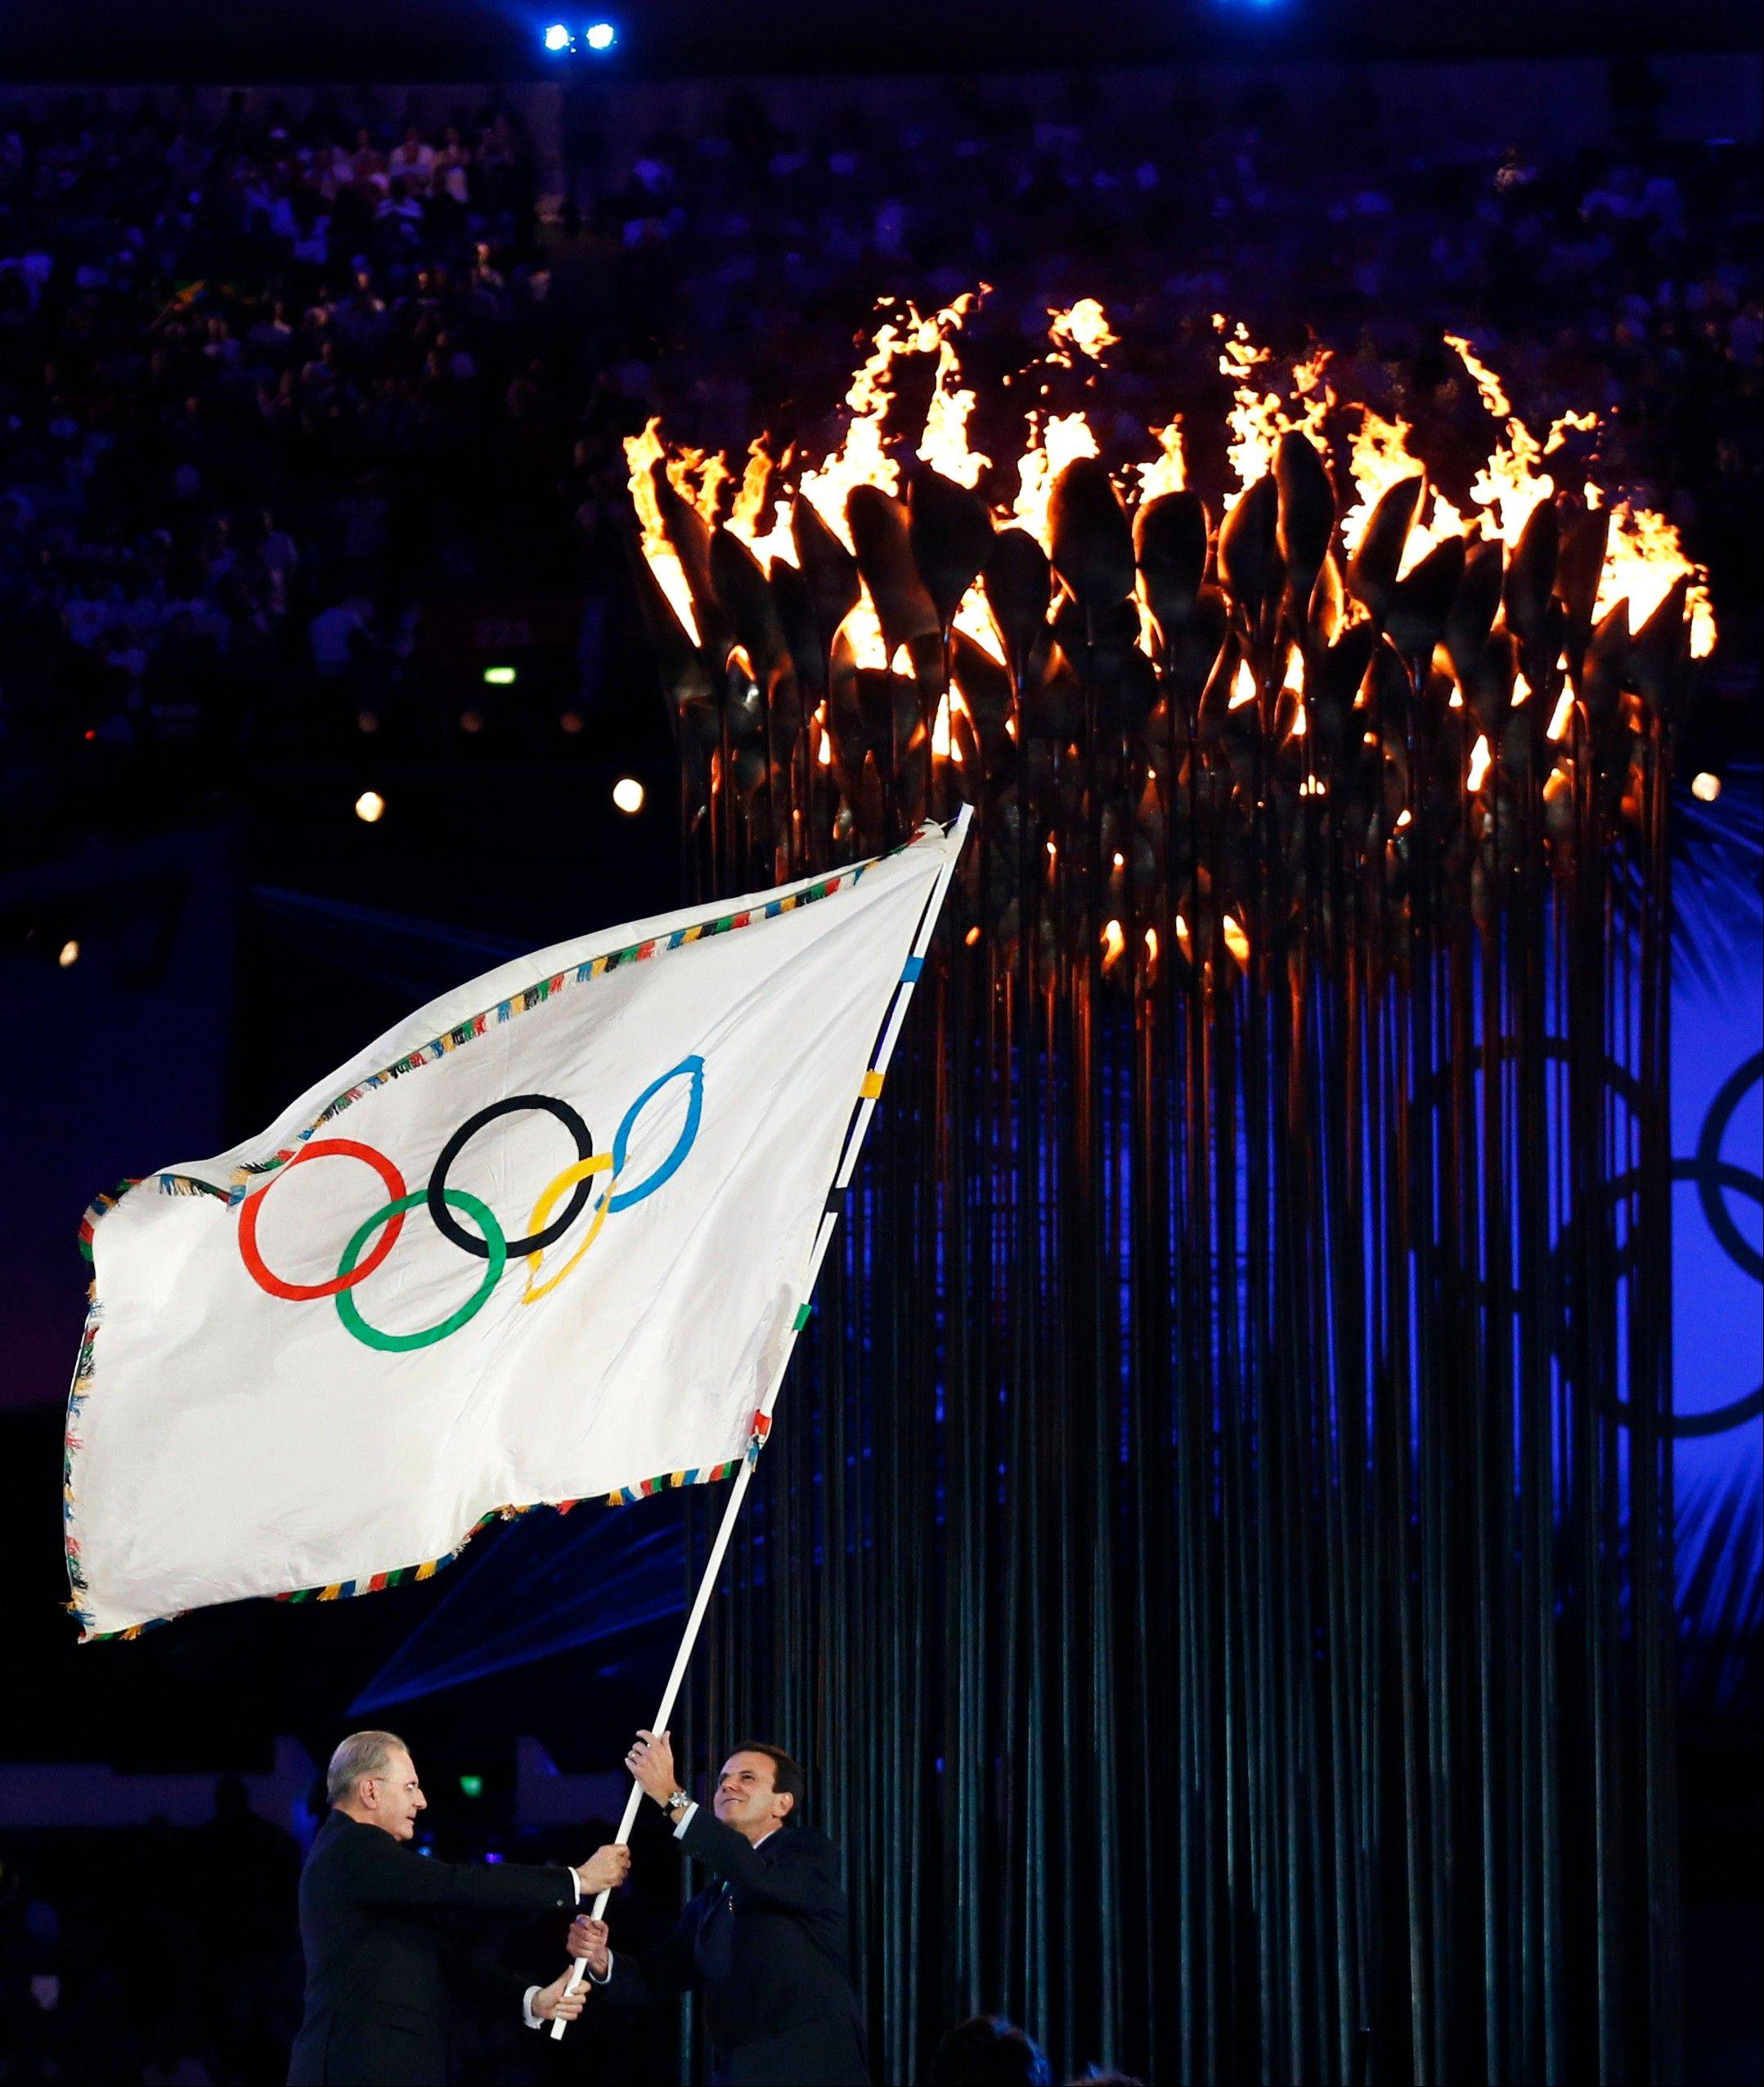 President of the International Olympic Committee Jacques Rogge, left, hands the Olympic flag to Rio de Janeiro's mayor Eduardo Paes during the Closing Ceremony at the 2012 Summer Olympics.